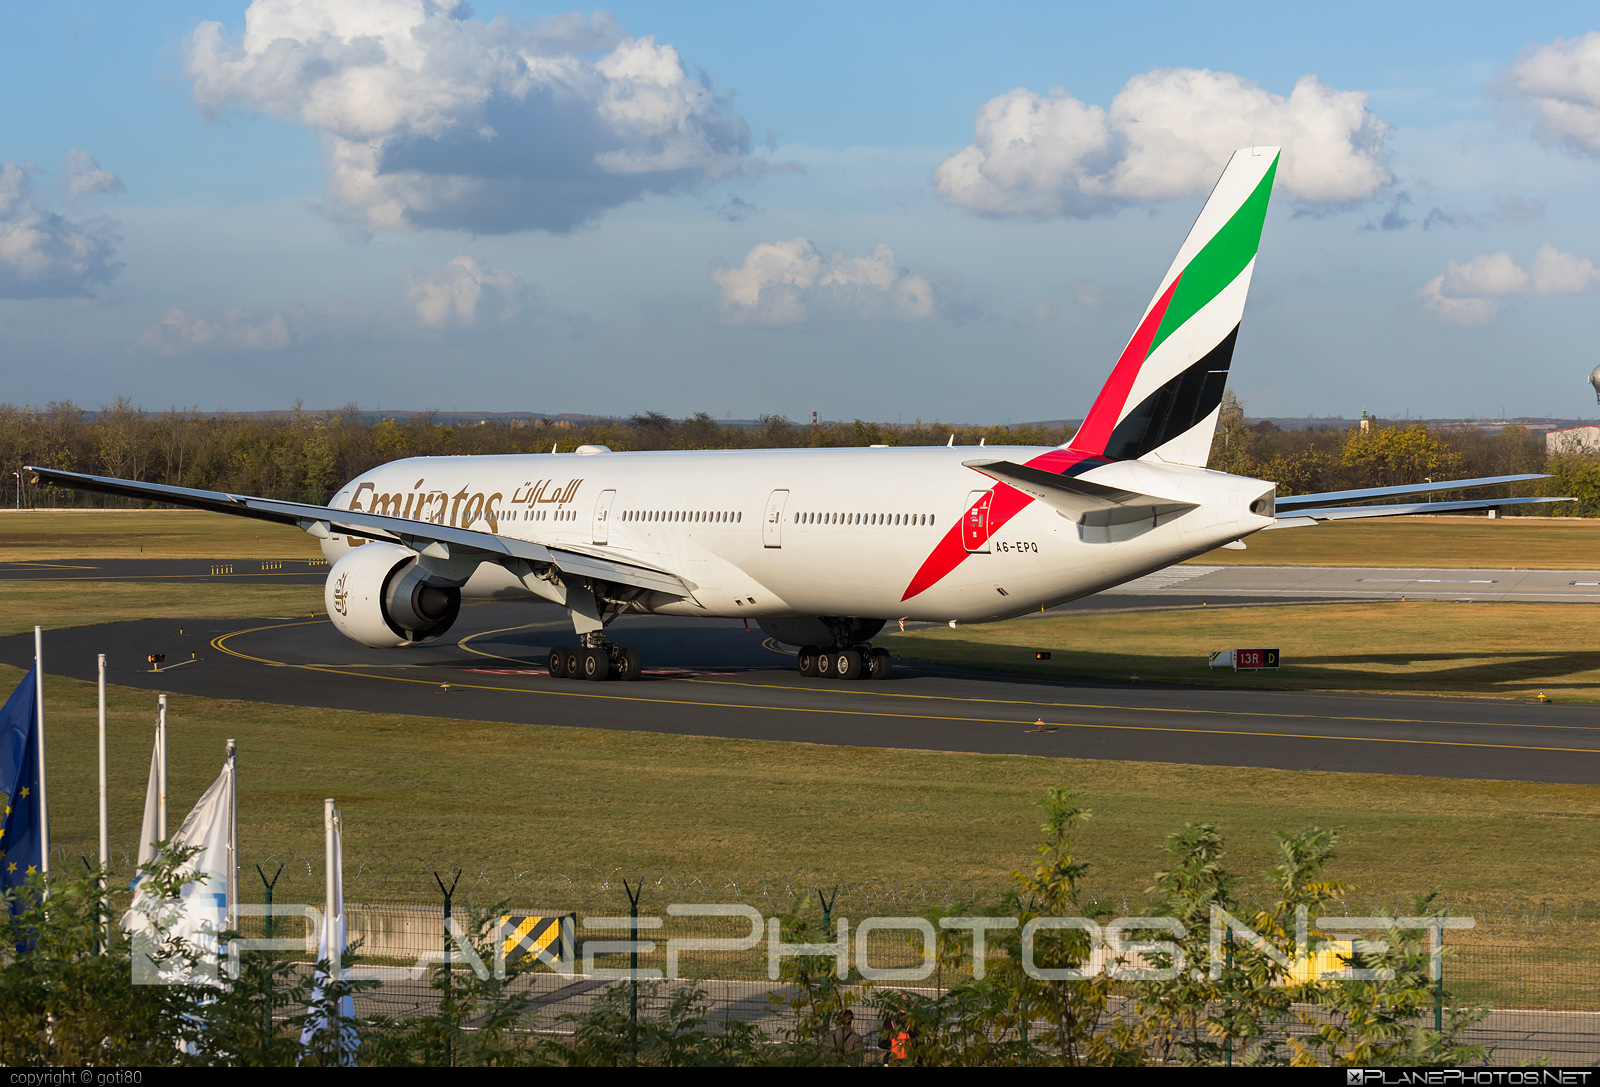 Boeing 777-300ER - A6-EPQ operated by Emirates #b777 #b777er #boeing #boeing777 #emirates #tripleseven